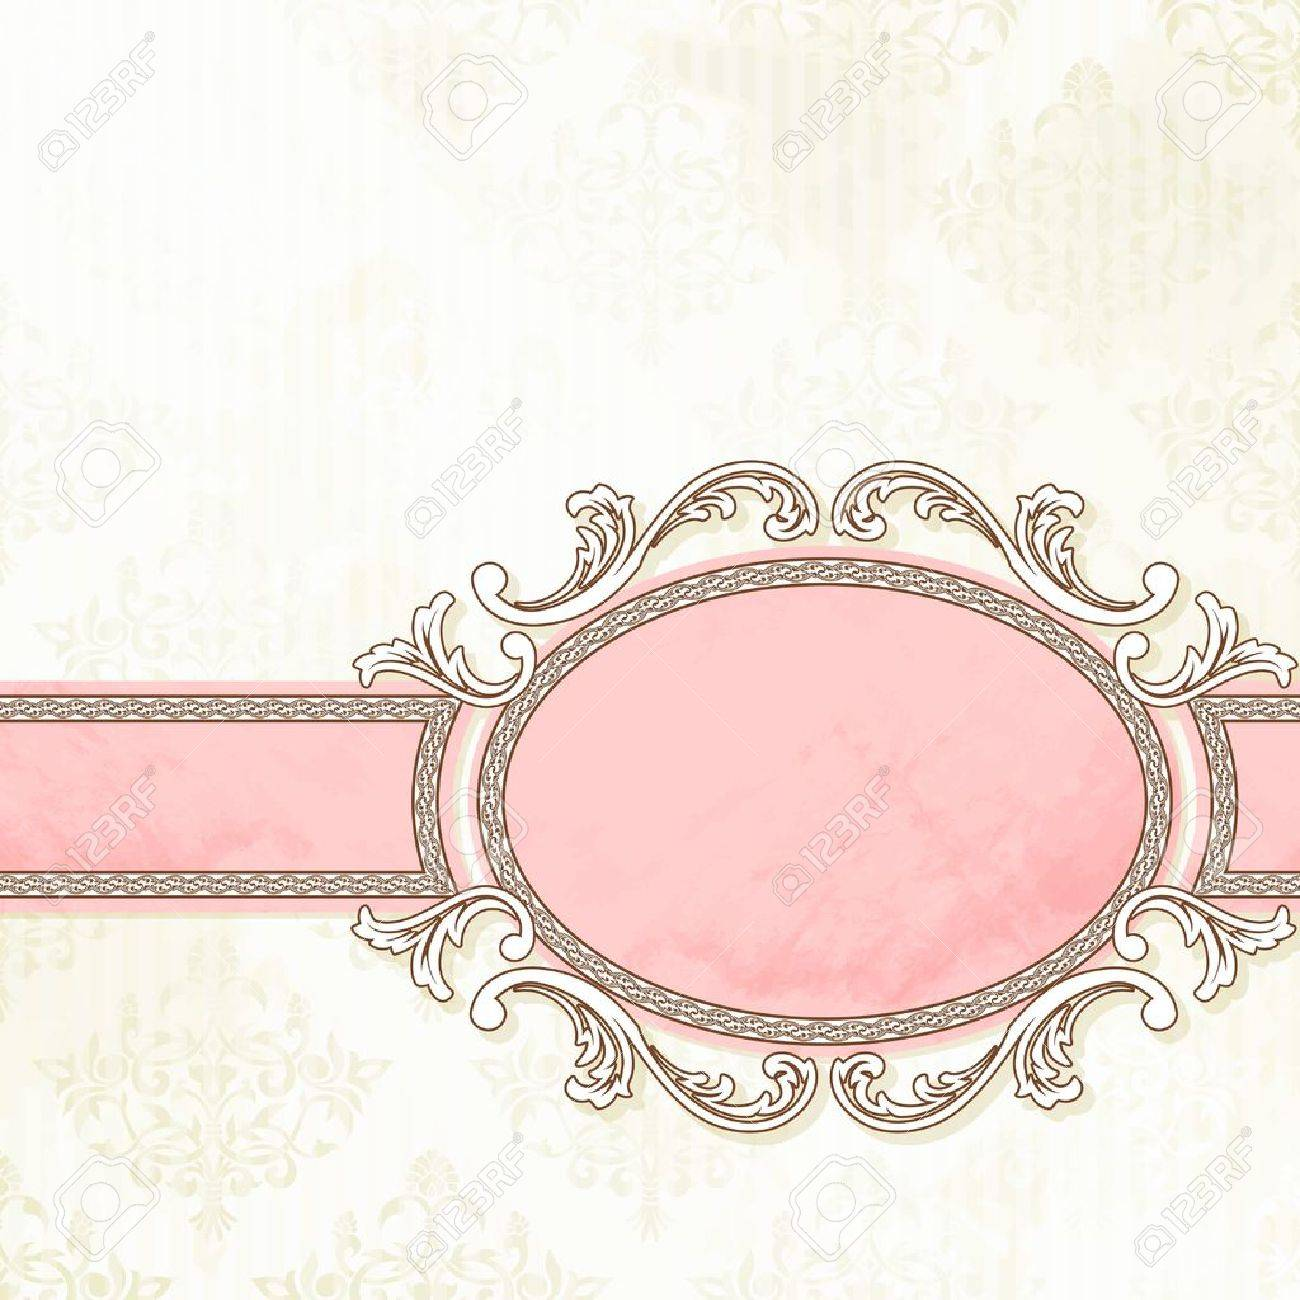 Grungy, intricate  pink and white banner design. Graphics are grouped and in several layers for easy editing. The file can be scaled to any size. Stock Vector - 10312861